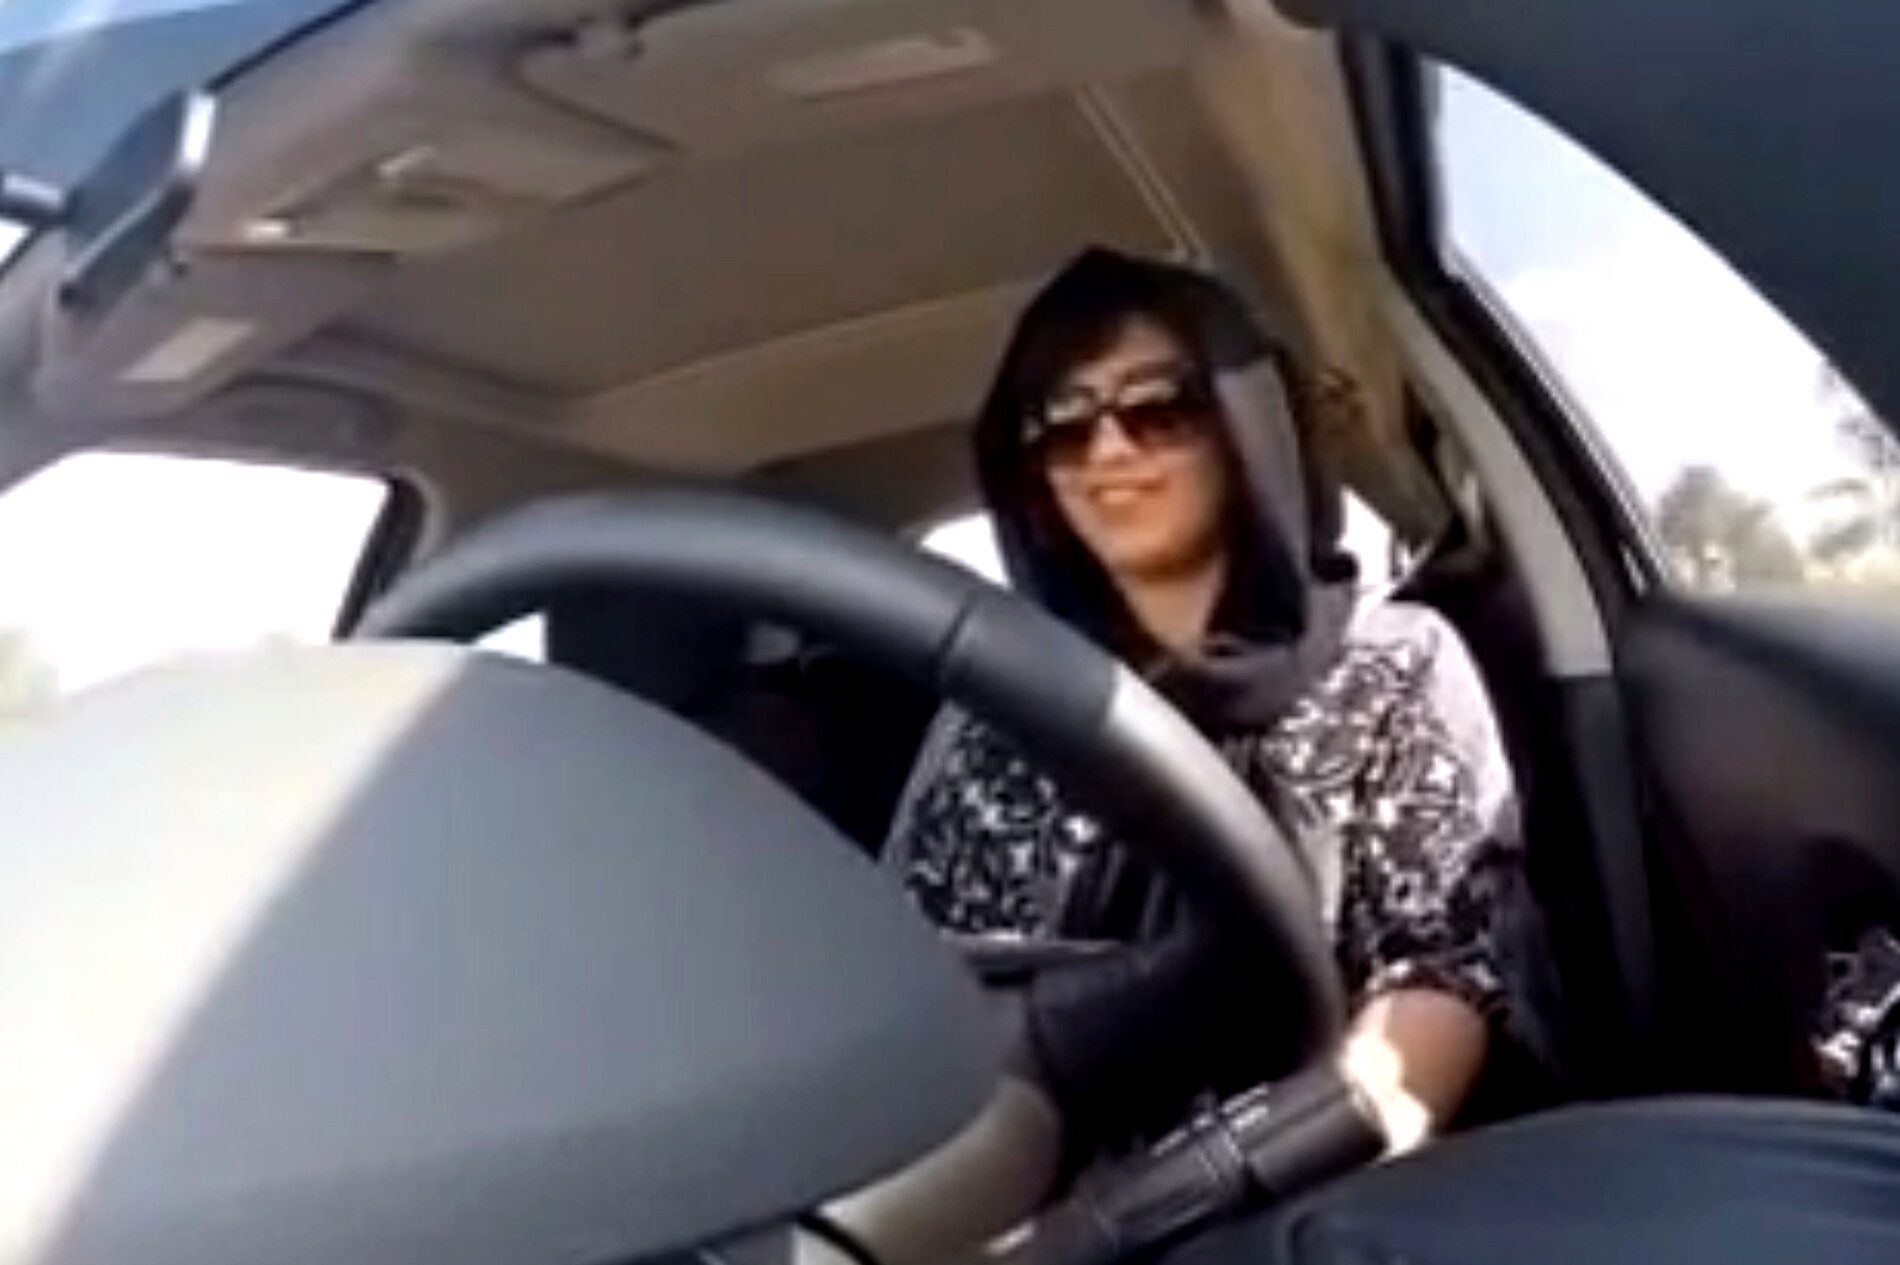 Loujain al-Hathloul filming a video of herself driving